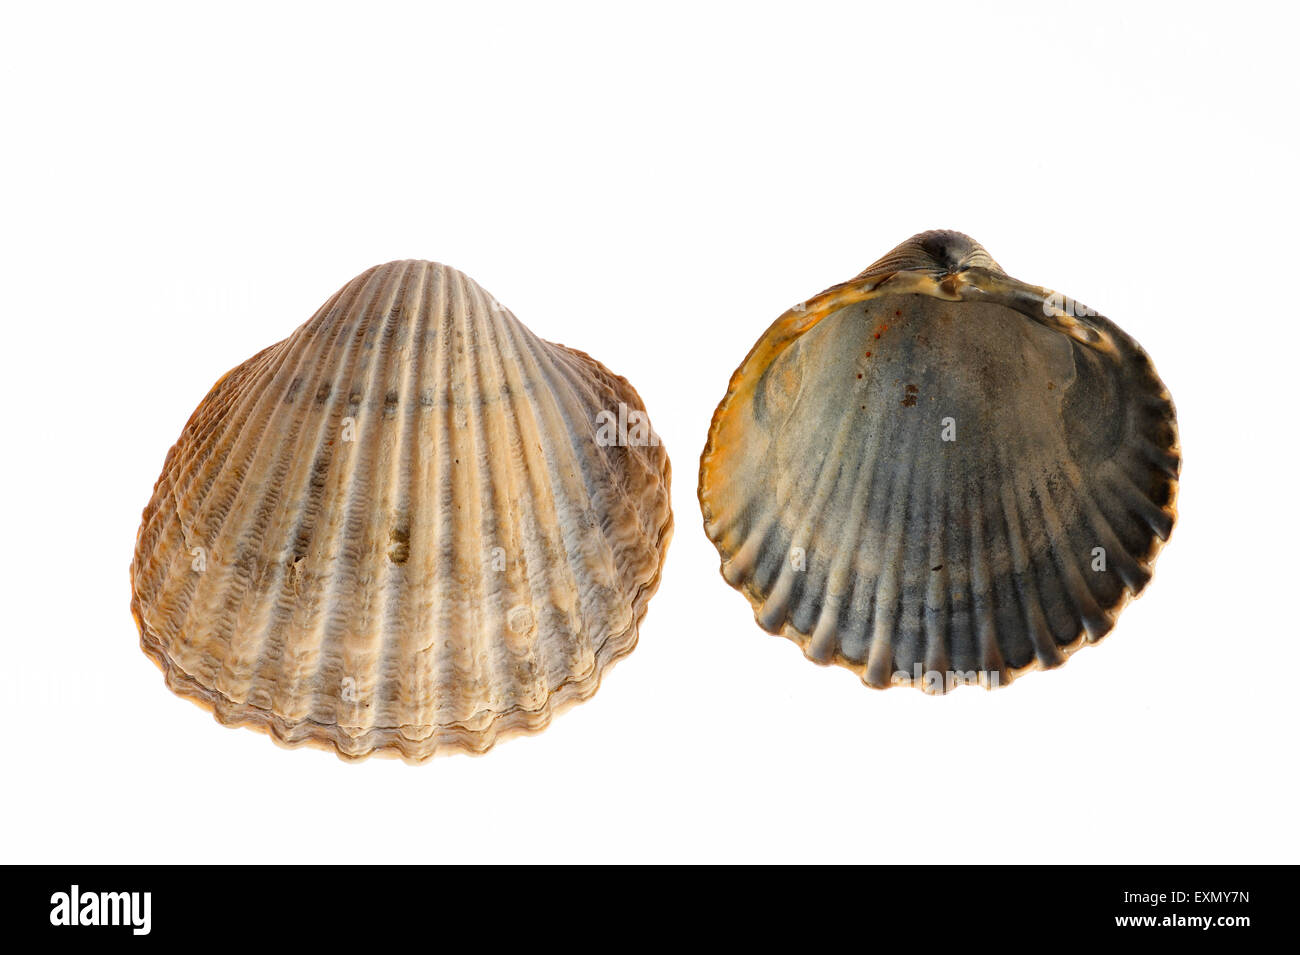 Poorly ribbed cockles (Acanthocardia paucicostata) on white background - Stock Image